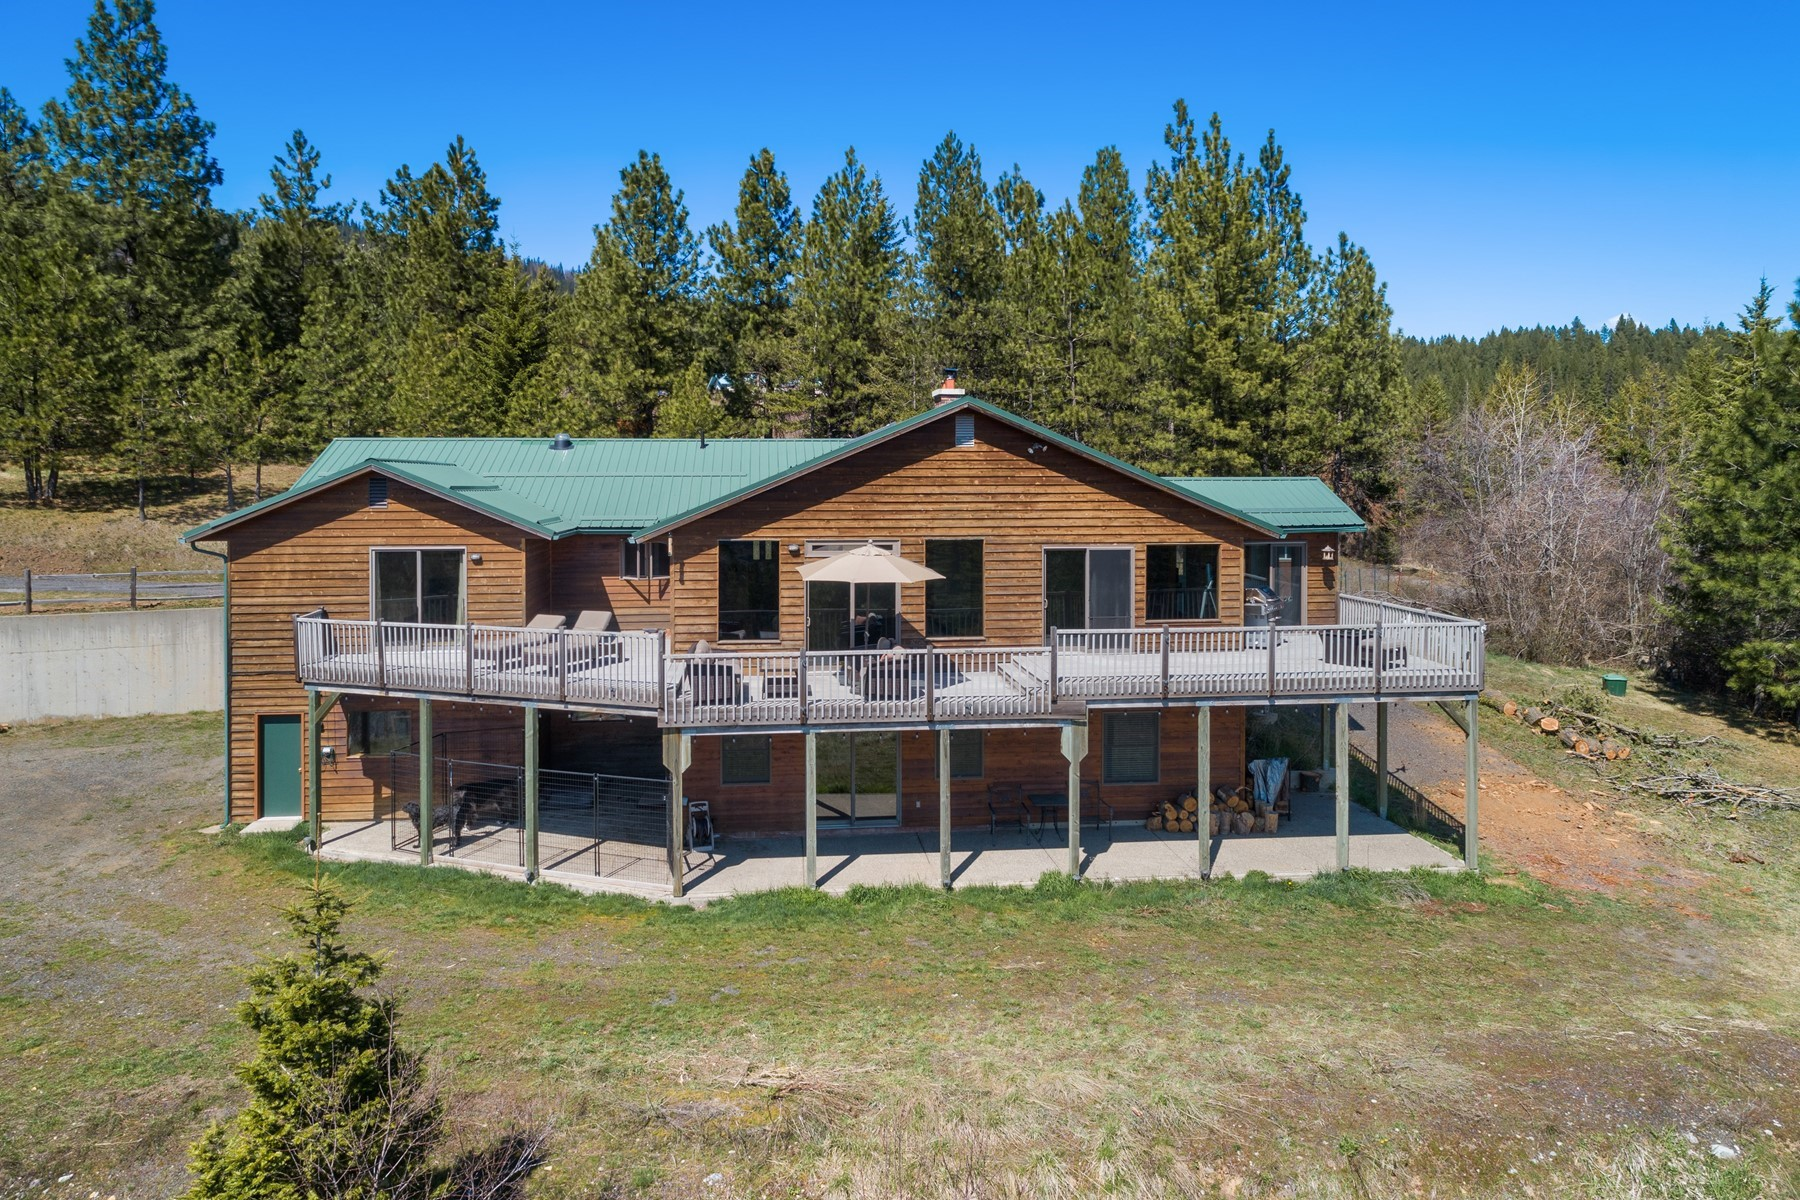 Single Family Homes for Sale at Home on Acreage with Views 2184 S Big Bear Rd Coeur D Alene, Idaho 83814 United States